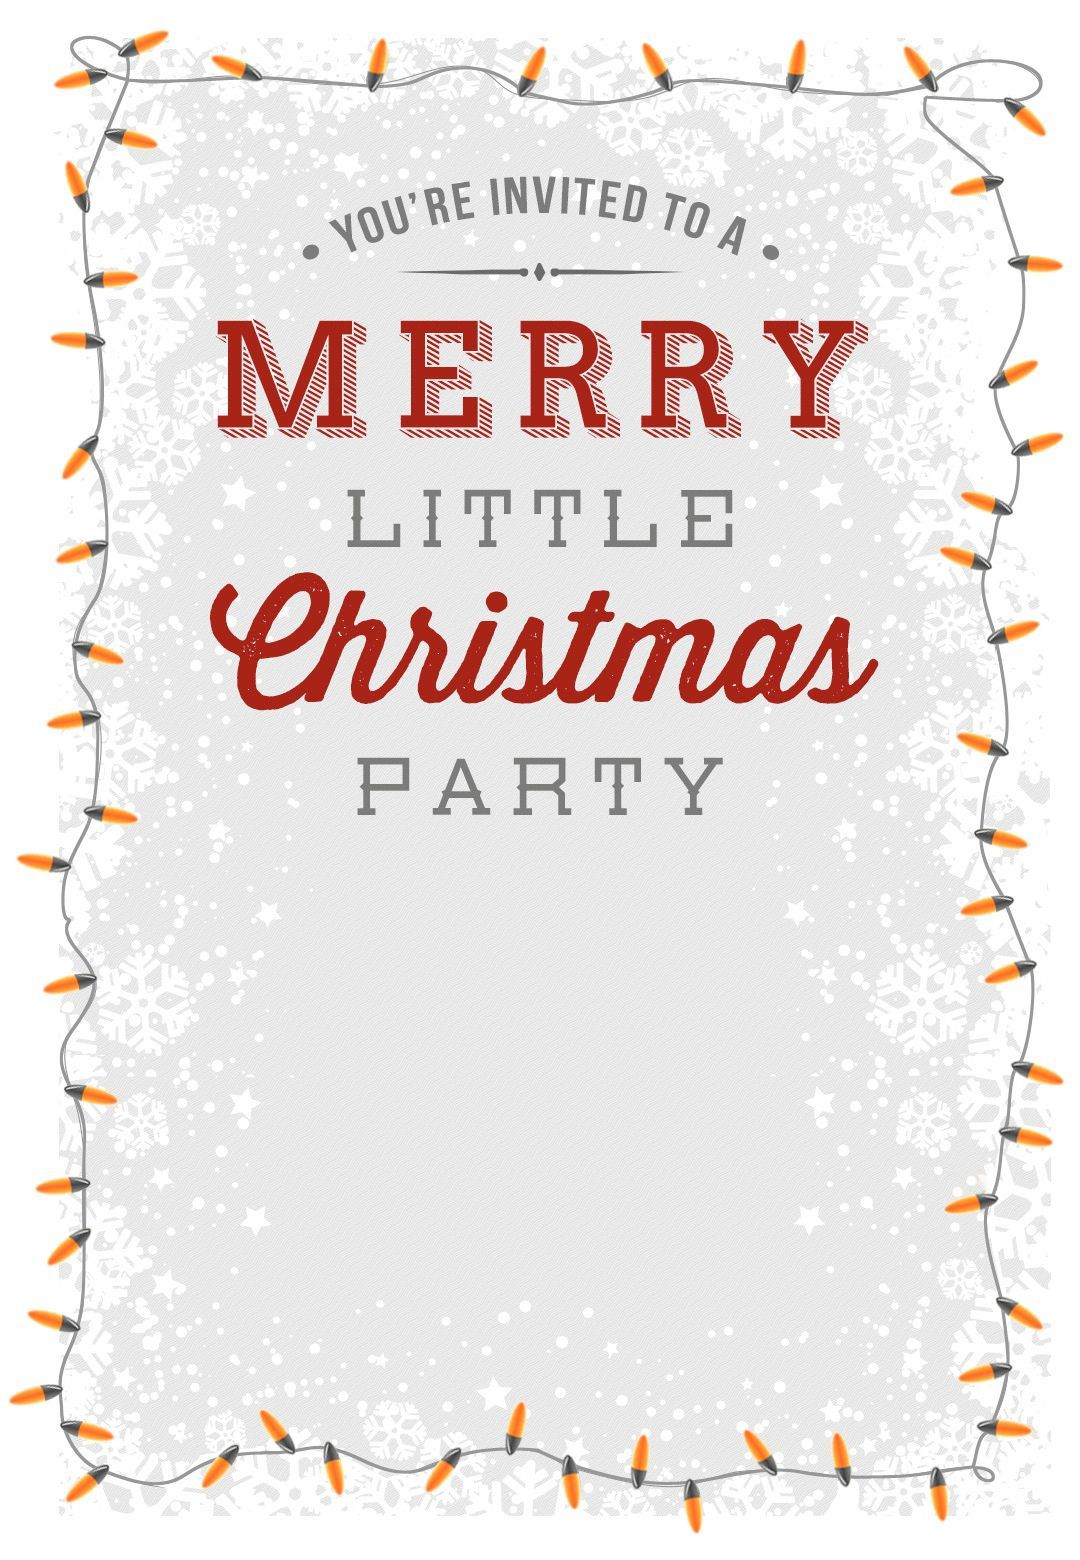 006 Formidable Xma Party Invite Template Free Example  Holiday Invitation Word Download ChristmaFull